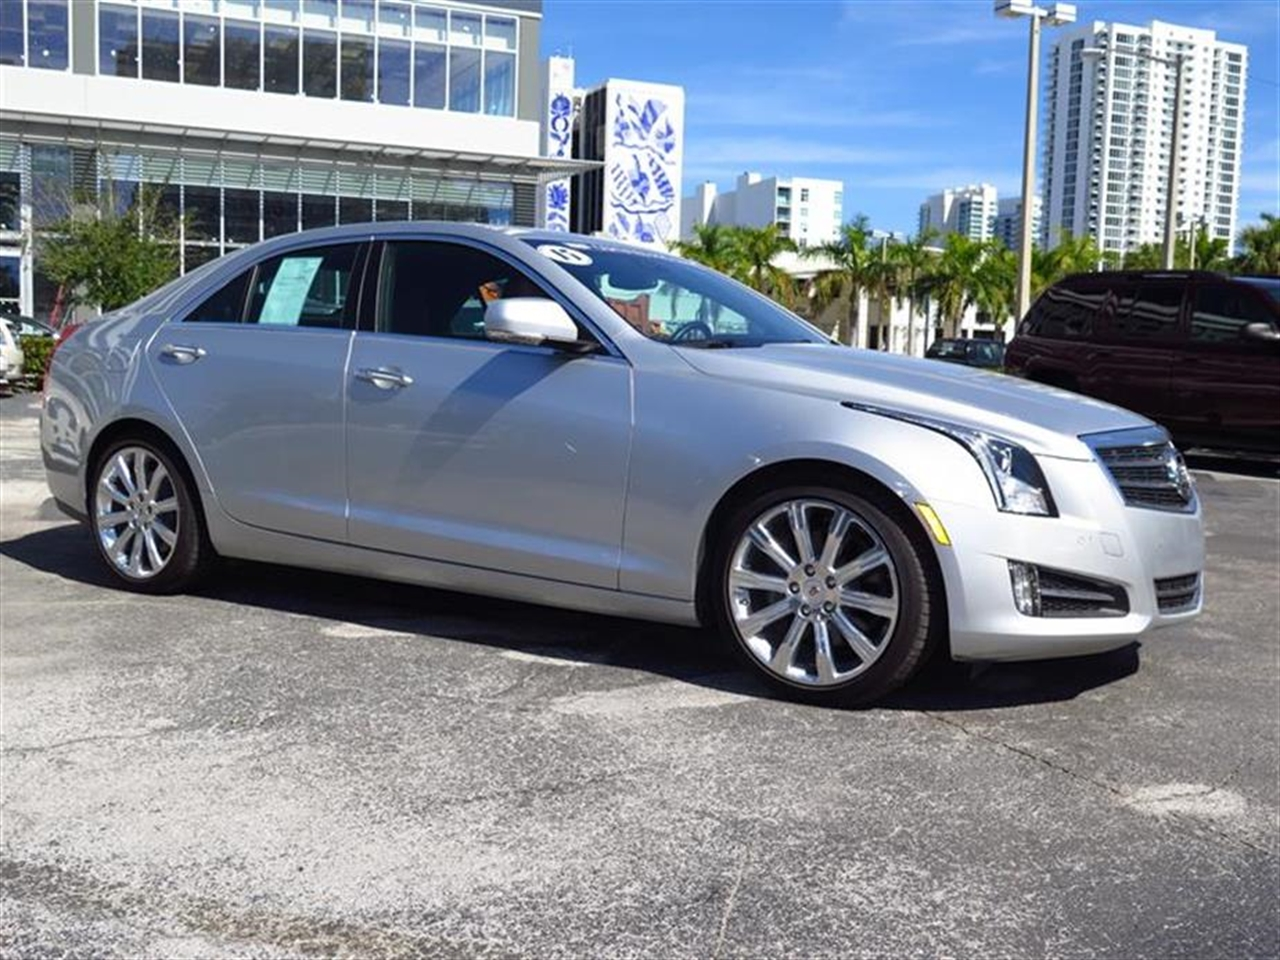 2013 CADILLAC ATS 4dr Sdn 20L Premium RWD 9719 miles Adaptive Remote Start Not available with M